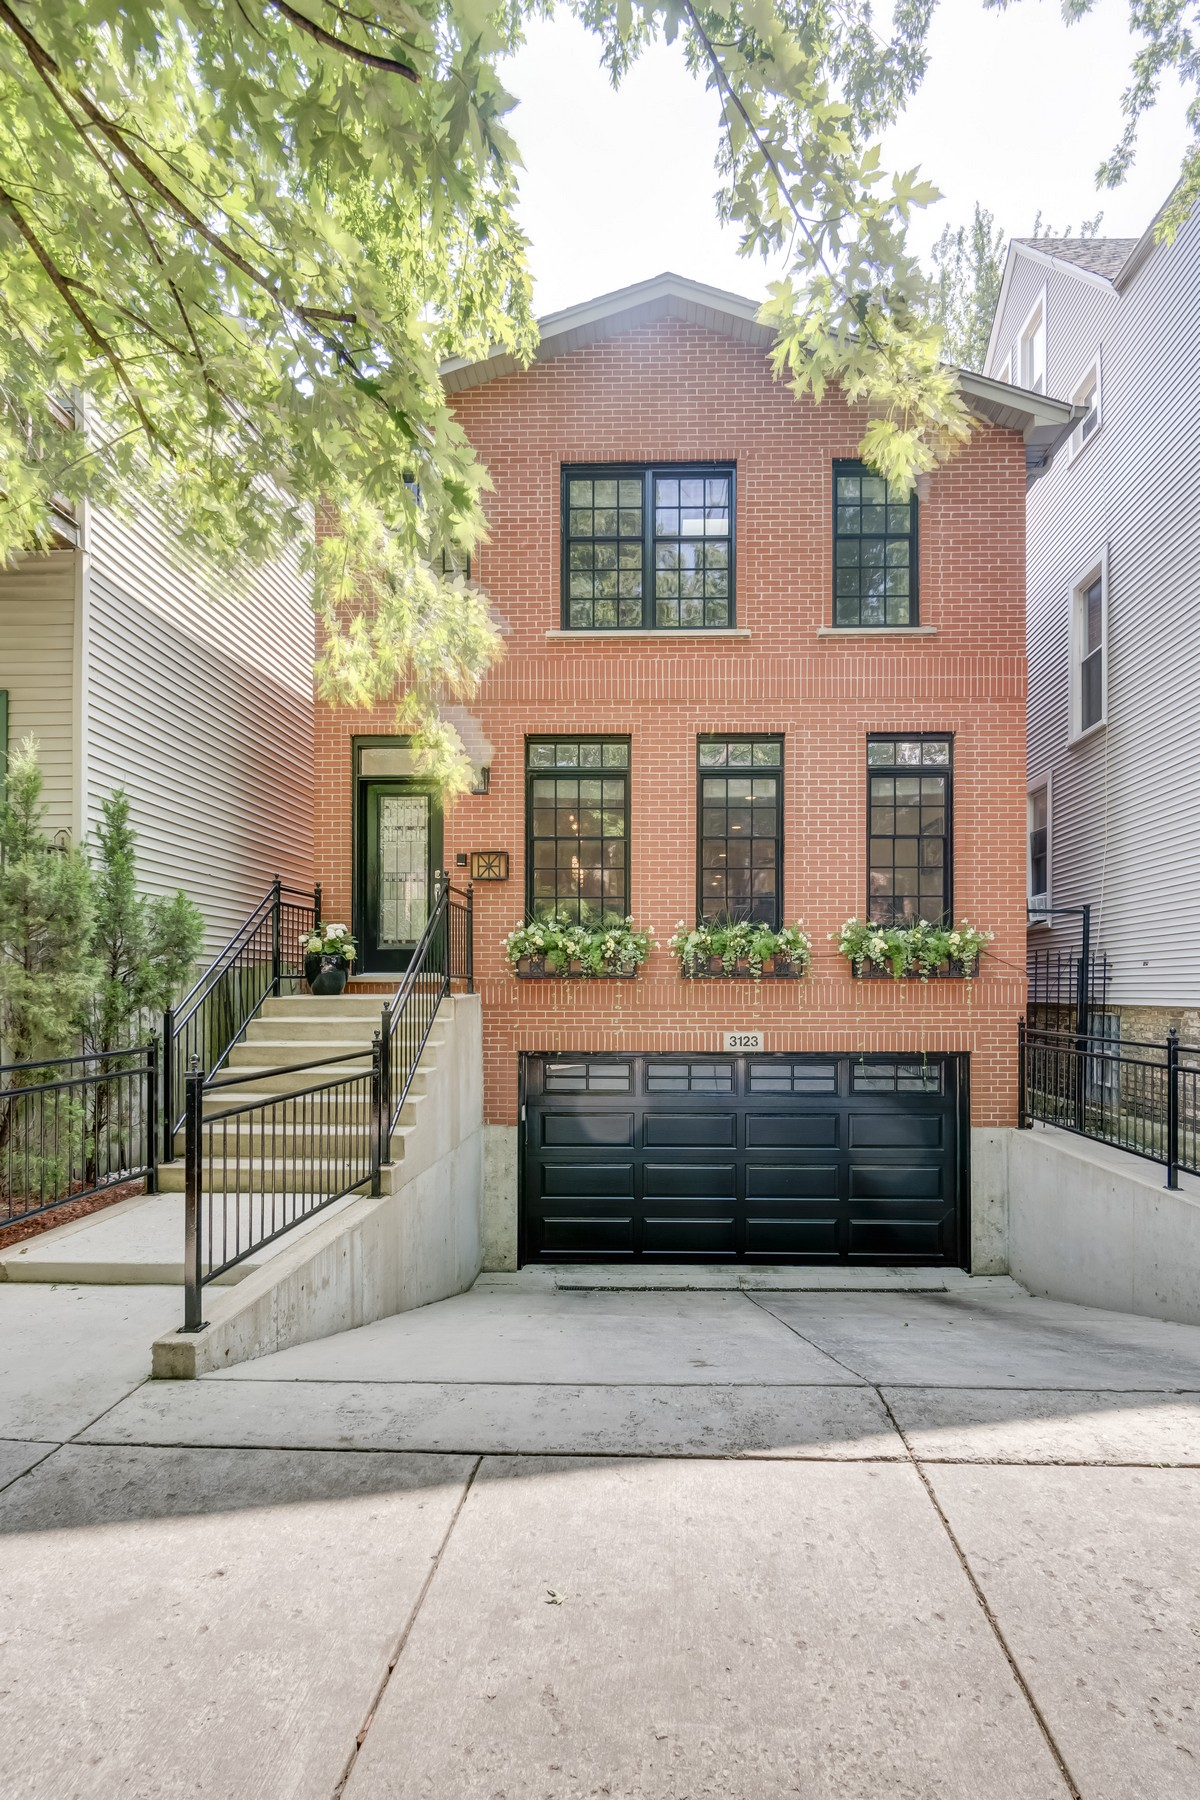 Single Family Home for Sale at Spacious Two Story Home 3123 N Paulina Street Chicago, Illinois, 60657 United States